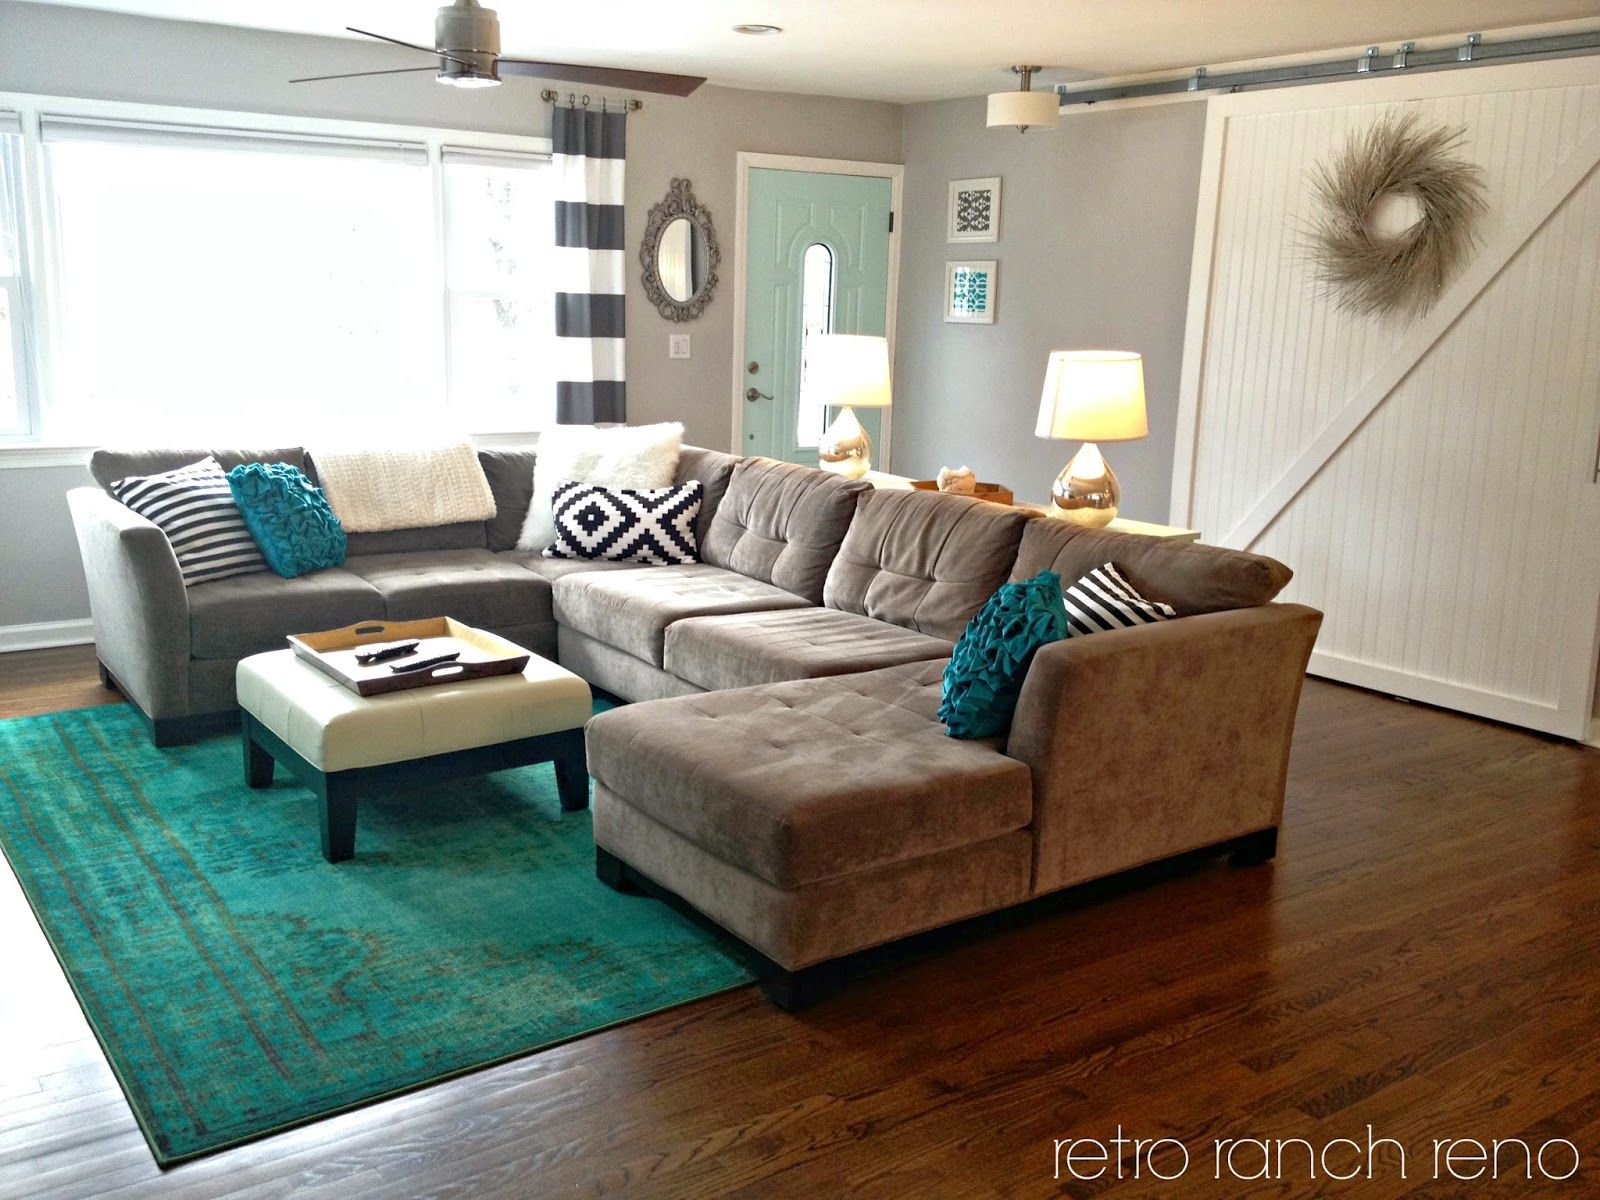 Black And White Living Room With Teal teal rug || living room rug || barn door || aqua || striped